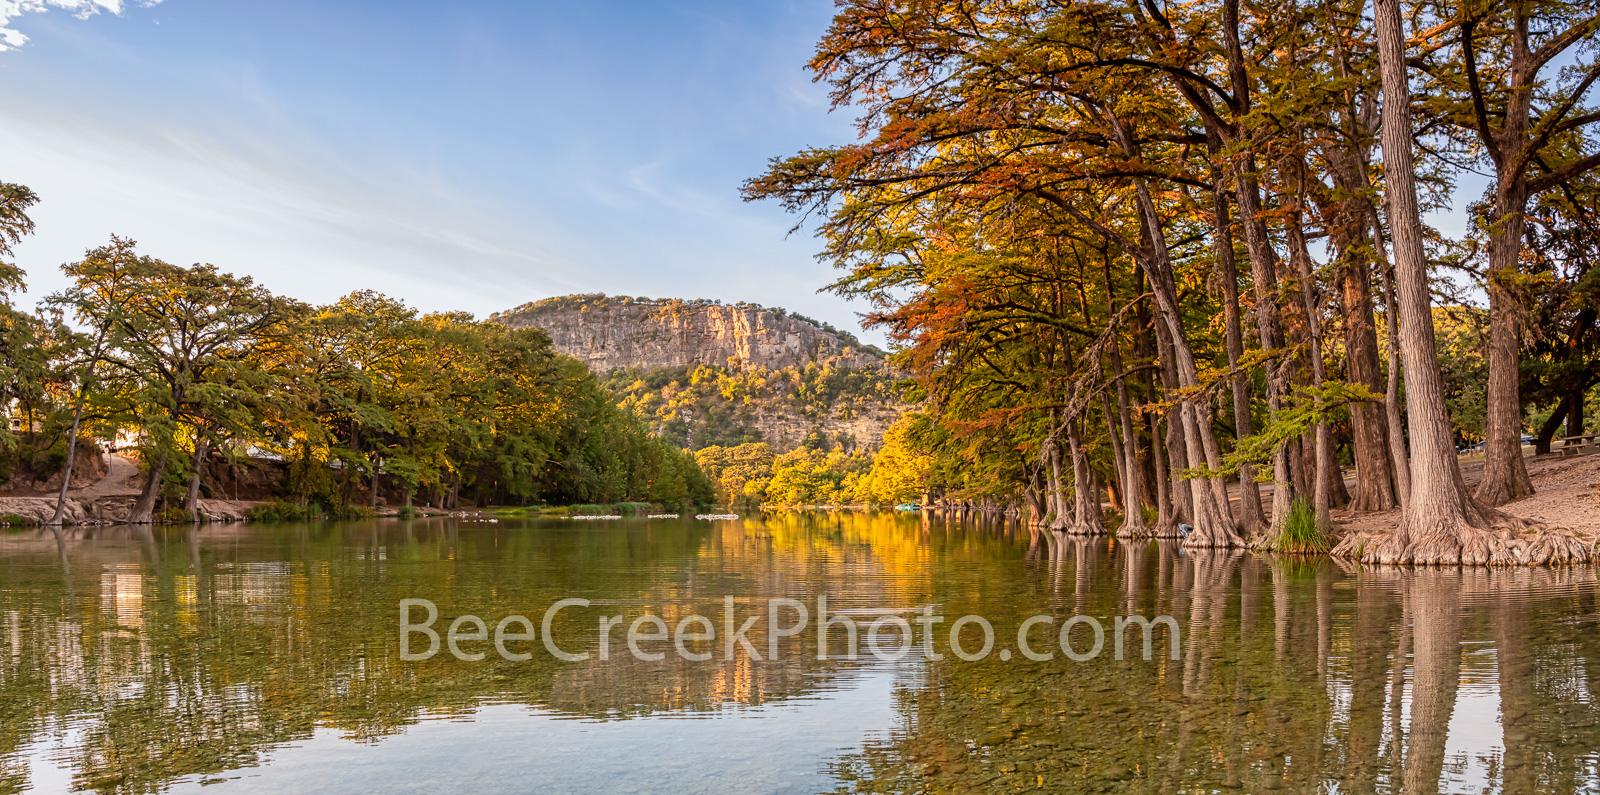 Texas, Garner State Park, Frio River, autumn, bald cypress, texas hill country, fall, old baldy, river, water, reflections, golden, rusty, cypress, hill country, pano, panorama,, photo